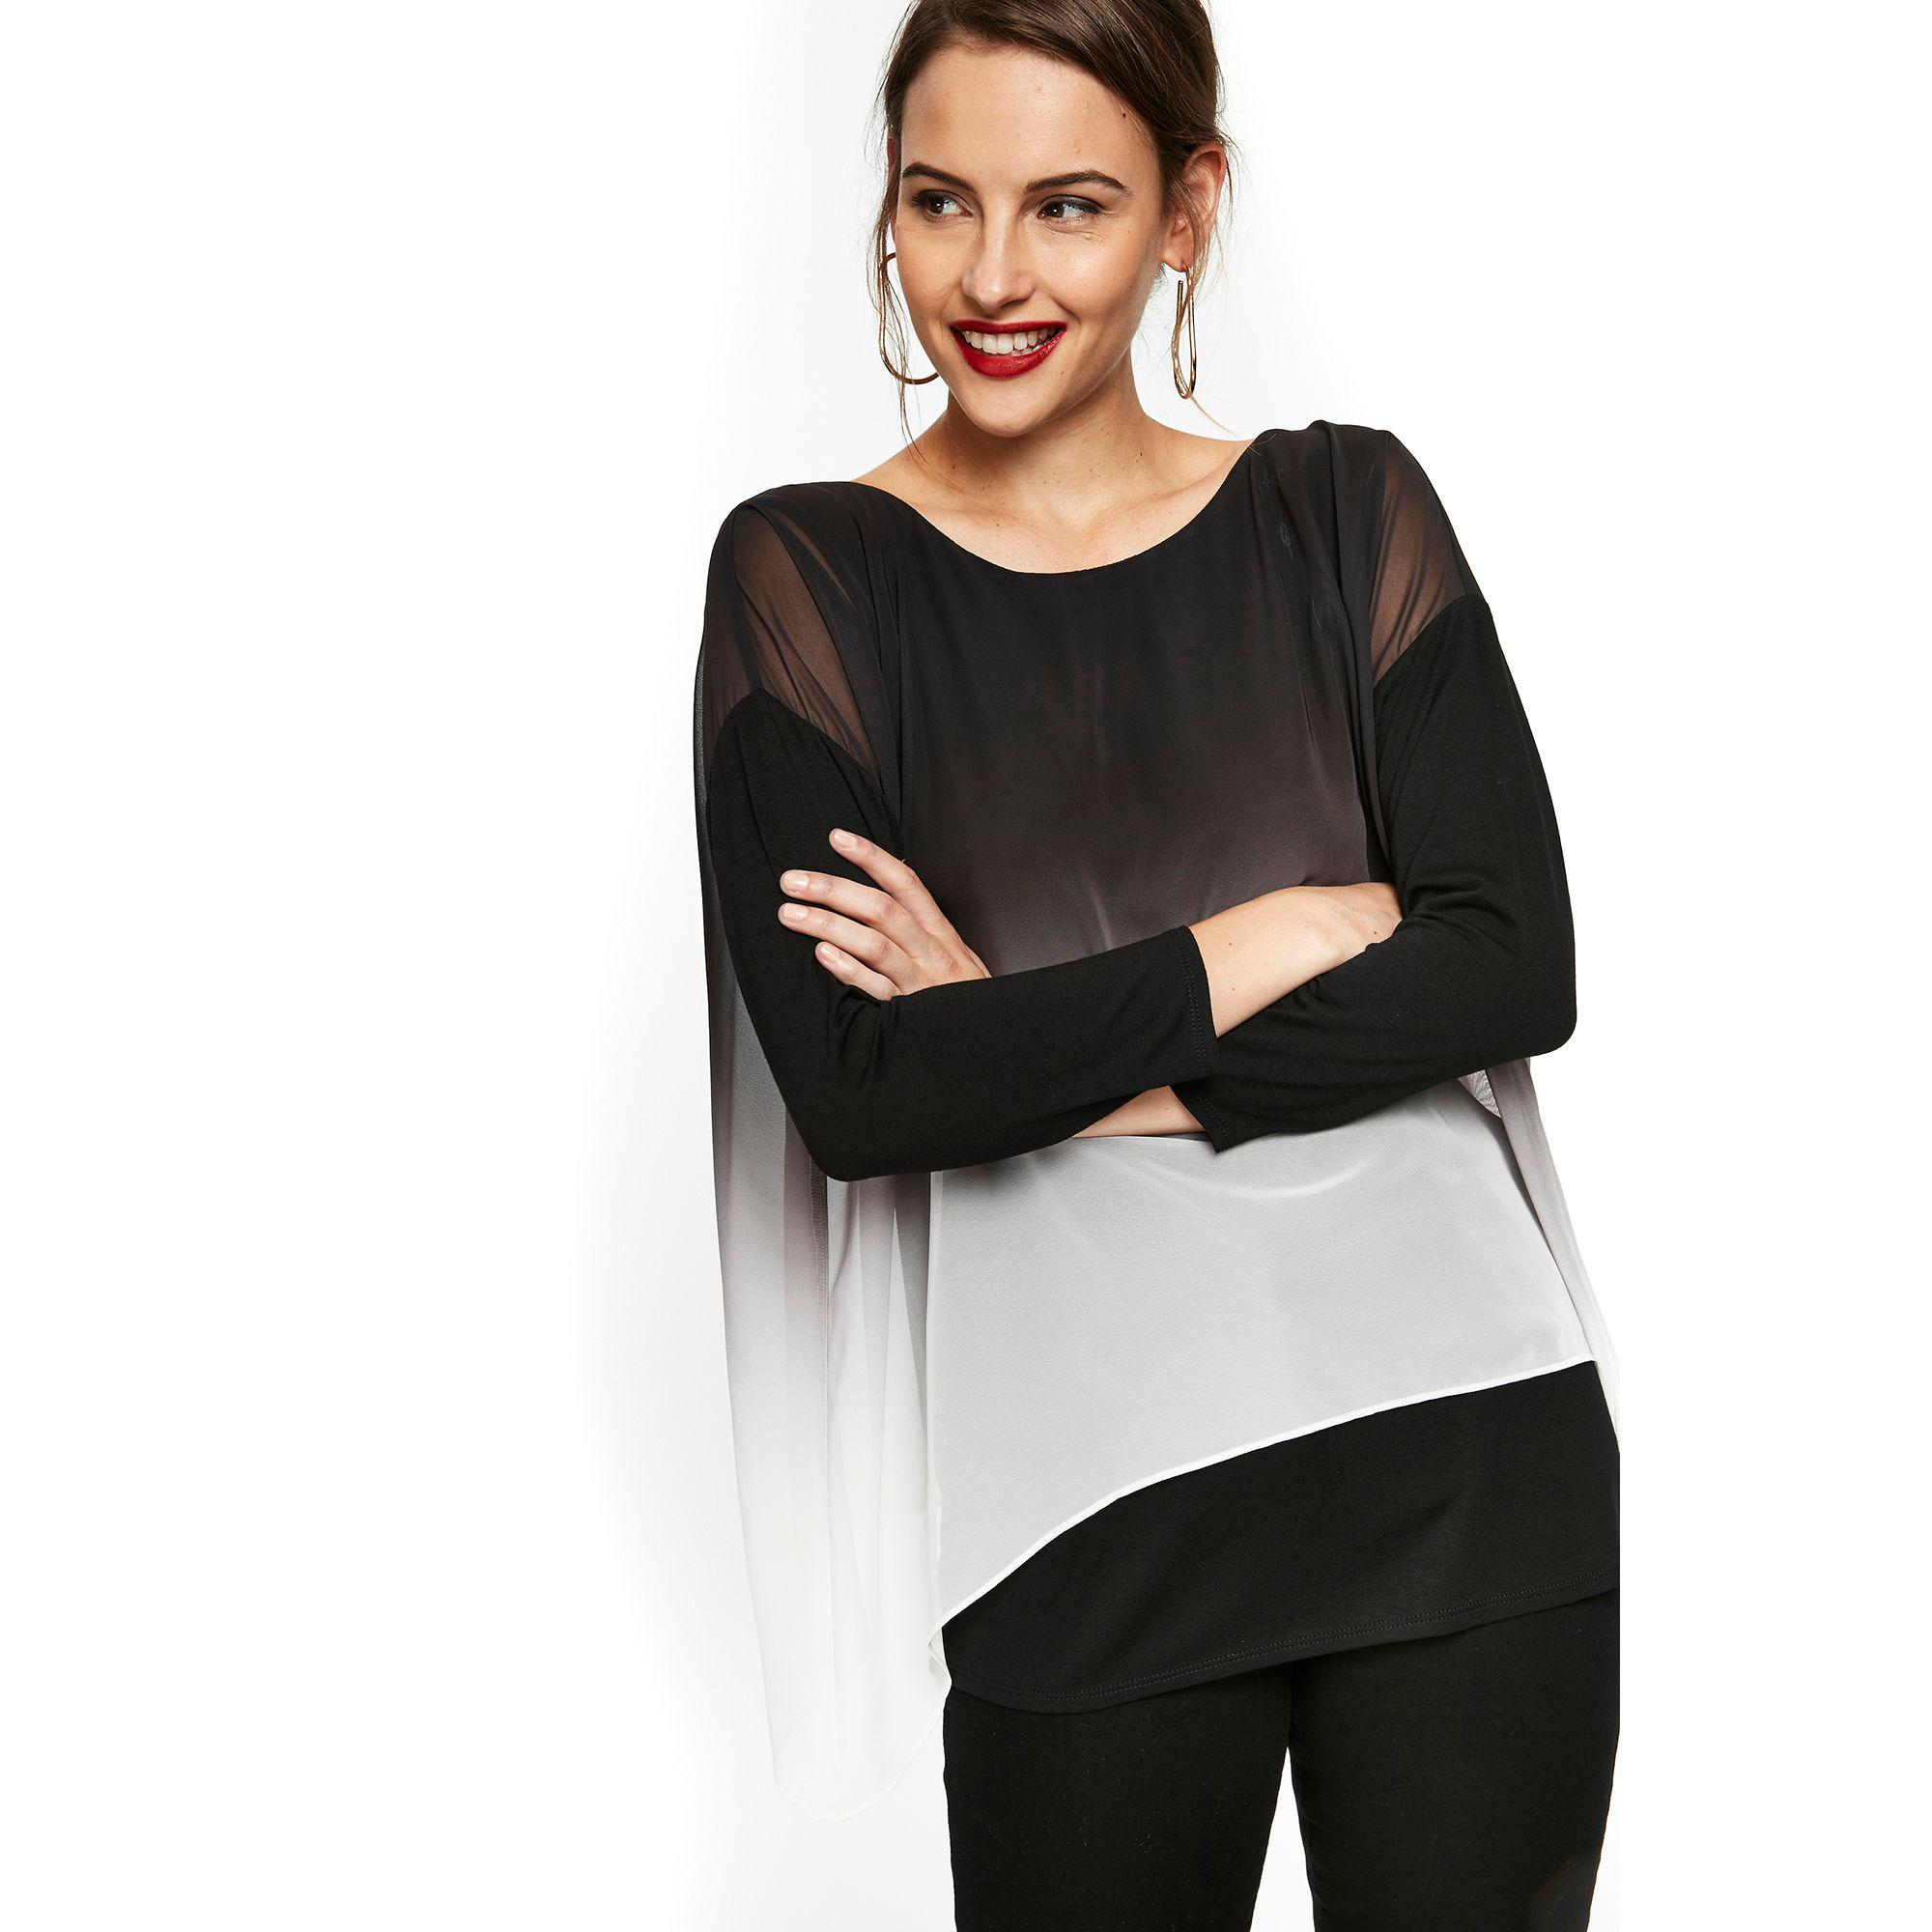 3dfc36b5aebf Wallis Black Ombre Print Overlayer Top in Black - Lyst